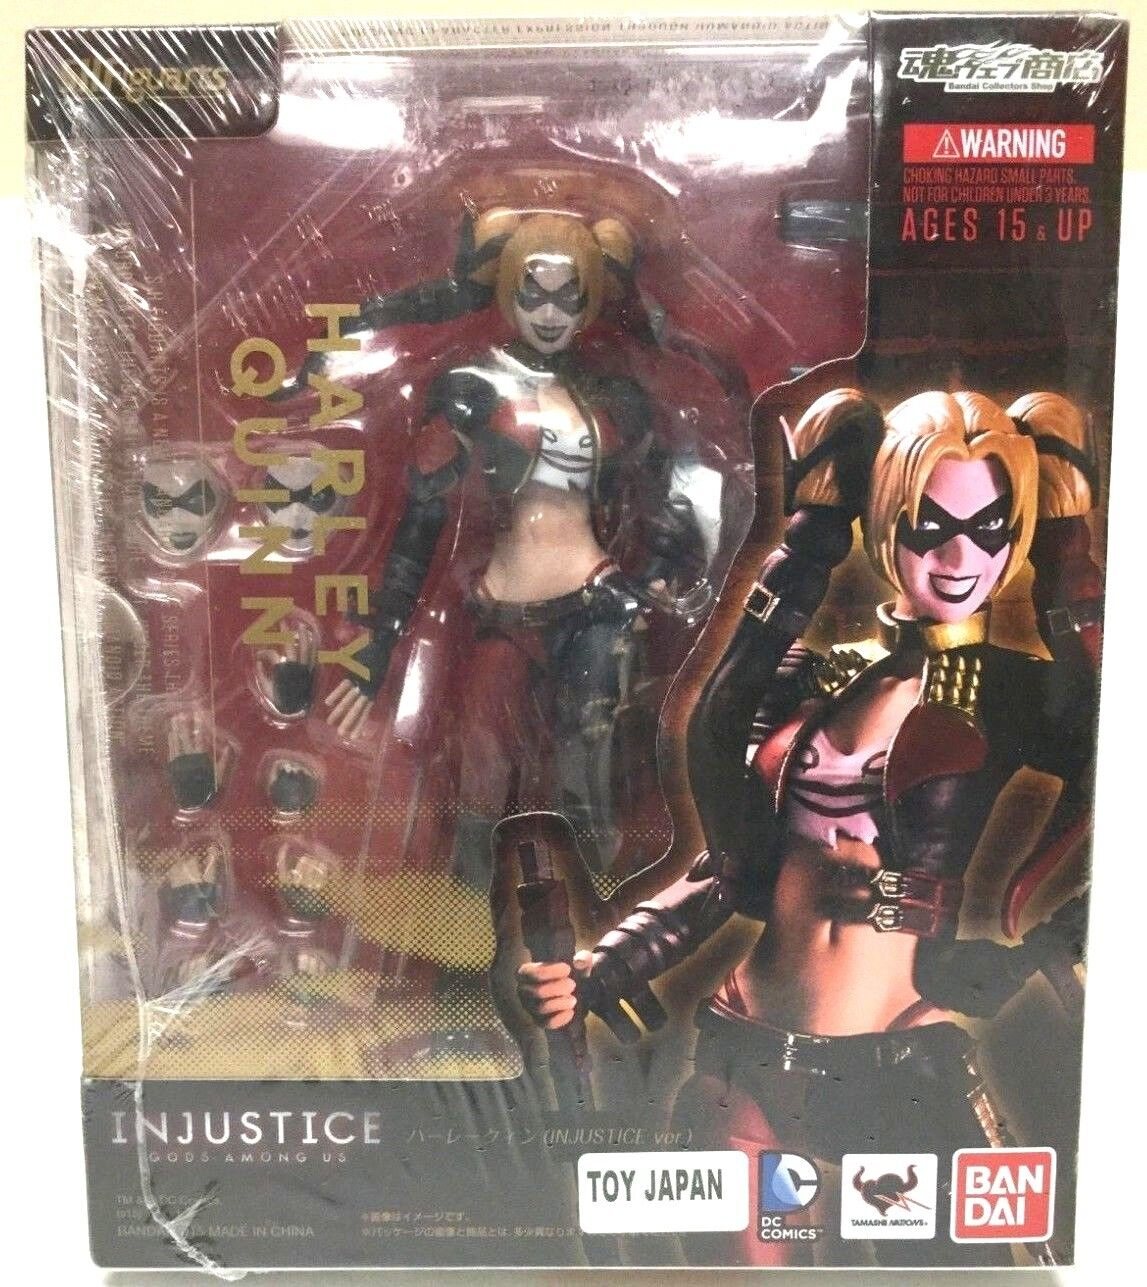 S.H. Figuarts Harley Quinn DC Comics Injustice Version Action Figure Toy